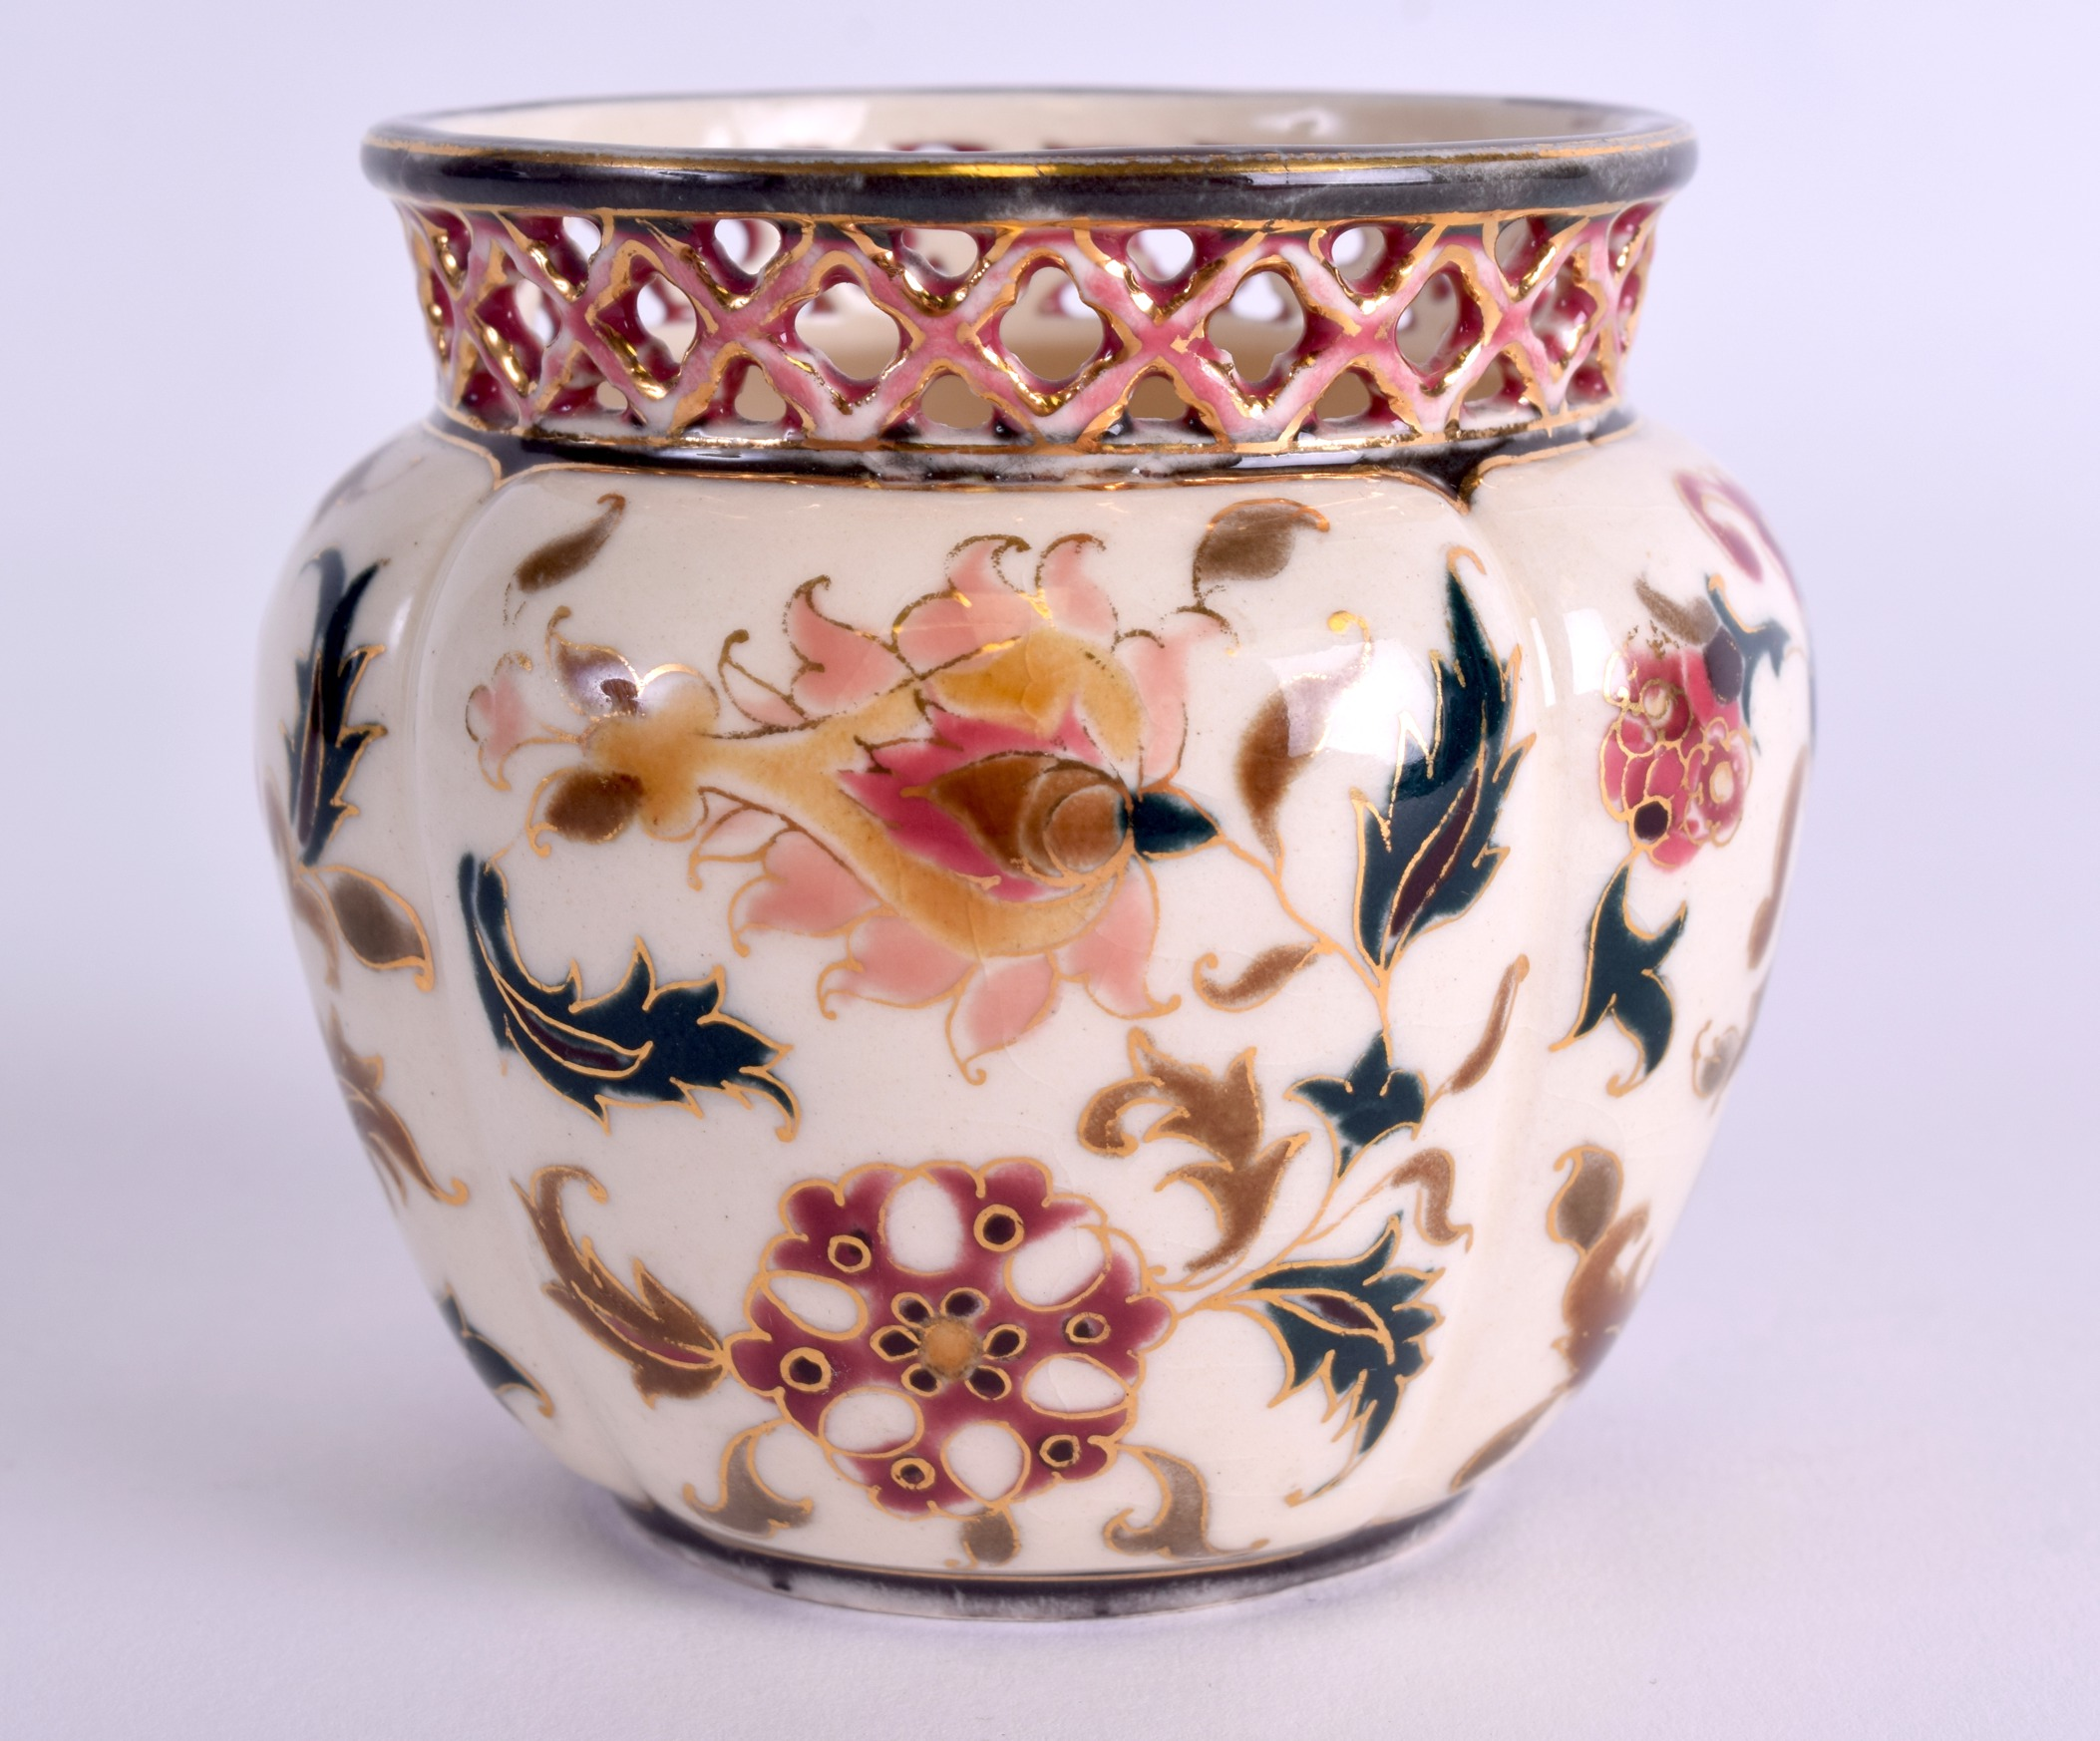 Lot 68 - A SMALL HUNGARIAN ZSOLNAY PECS VASE decorated with flowers. 7.5 cm x 7 cm.